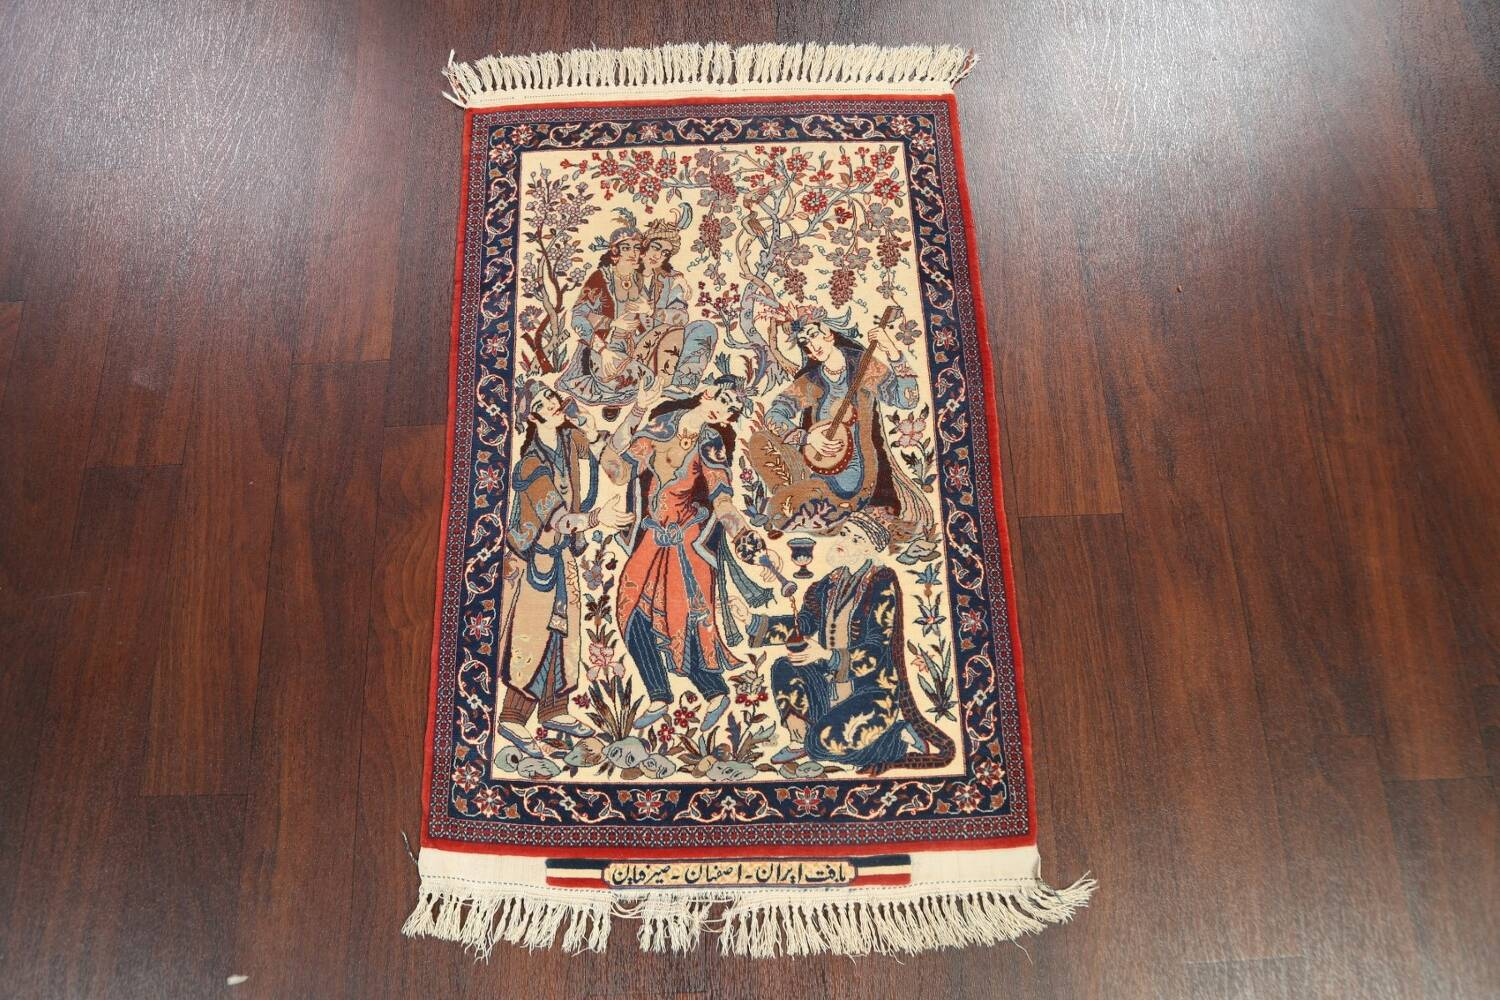 Antique Vegetable Dye Tableau Isfahan Persian Area Rug 2x3 image 2